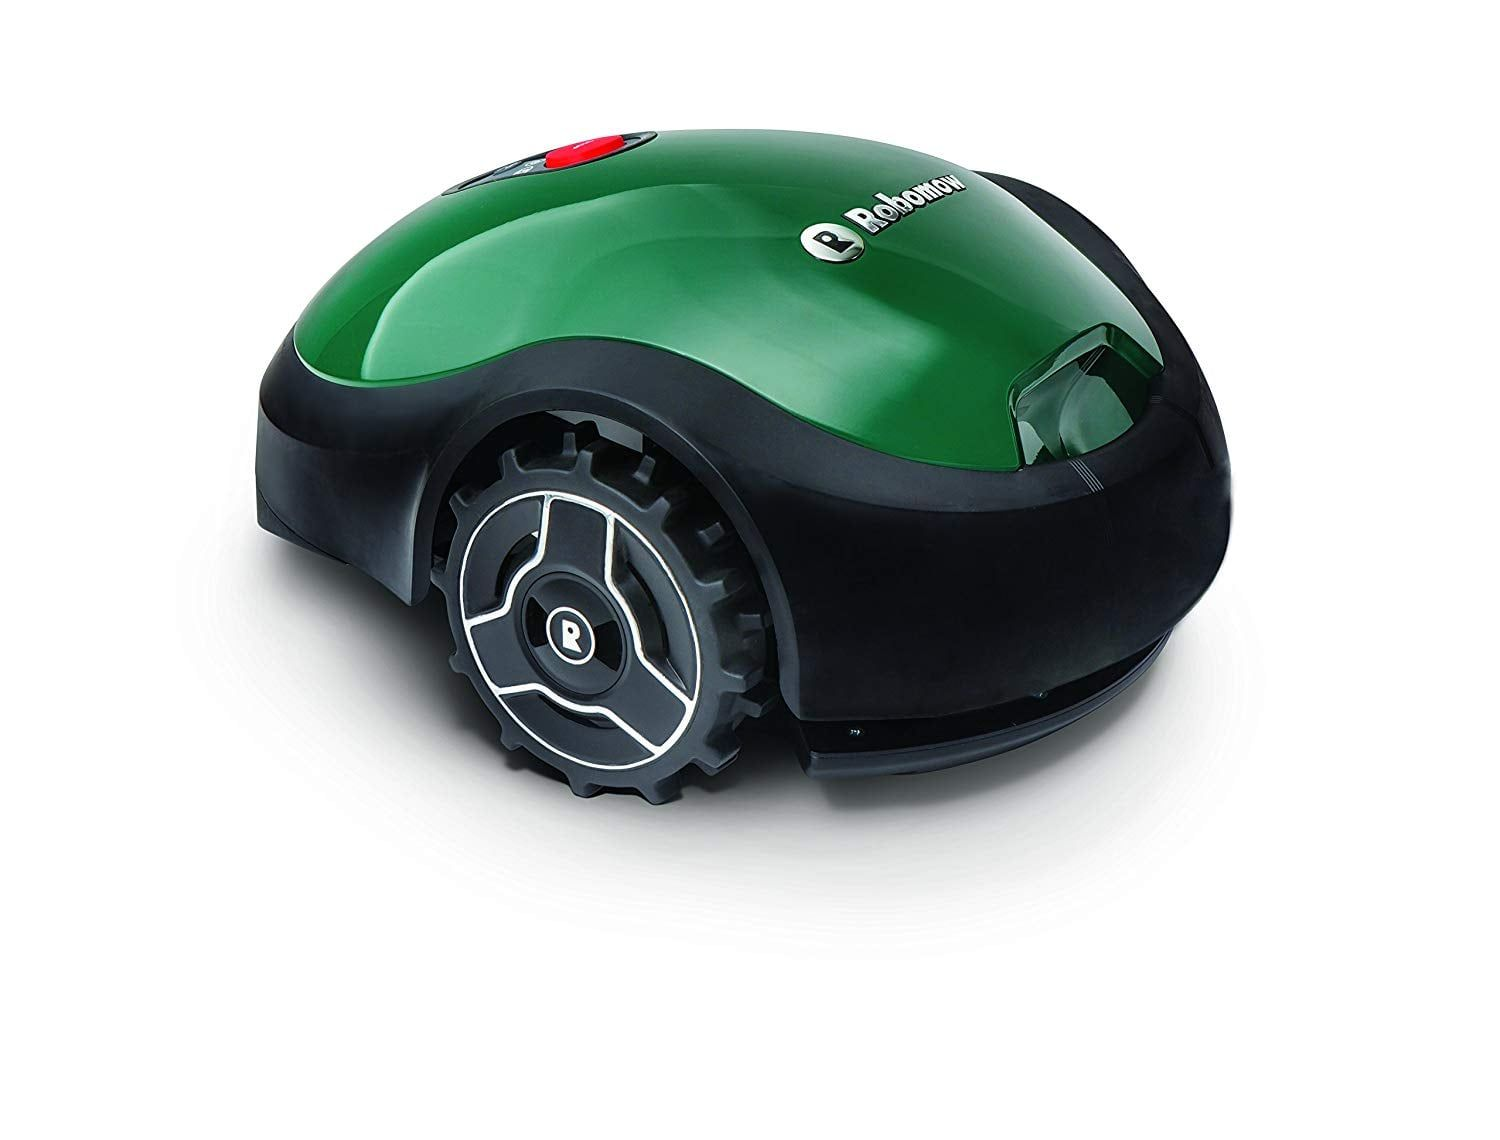 85 Gadgets On Amazon Customers Will Buy Till They Re Out Of Stock We Re Predicting It Robotic Lawn Mower Push Lawn Mower Riding Lawn Mowers